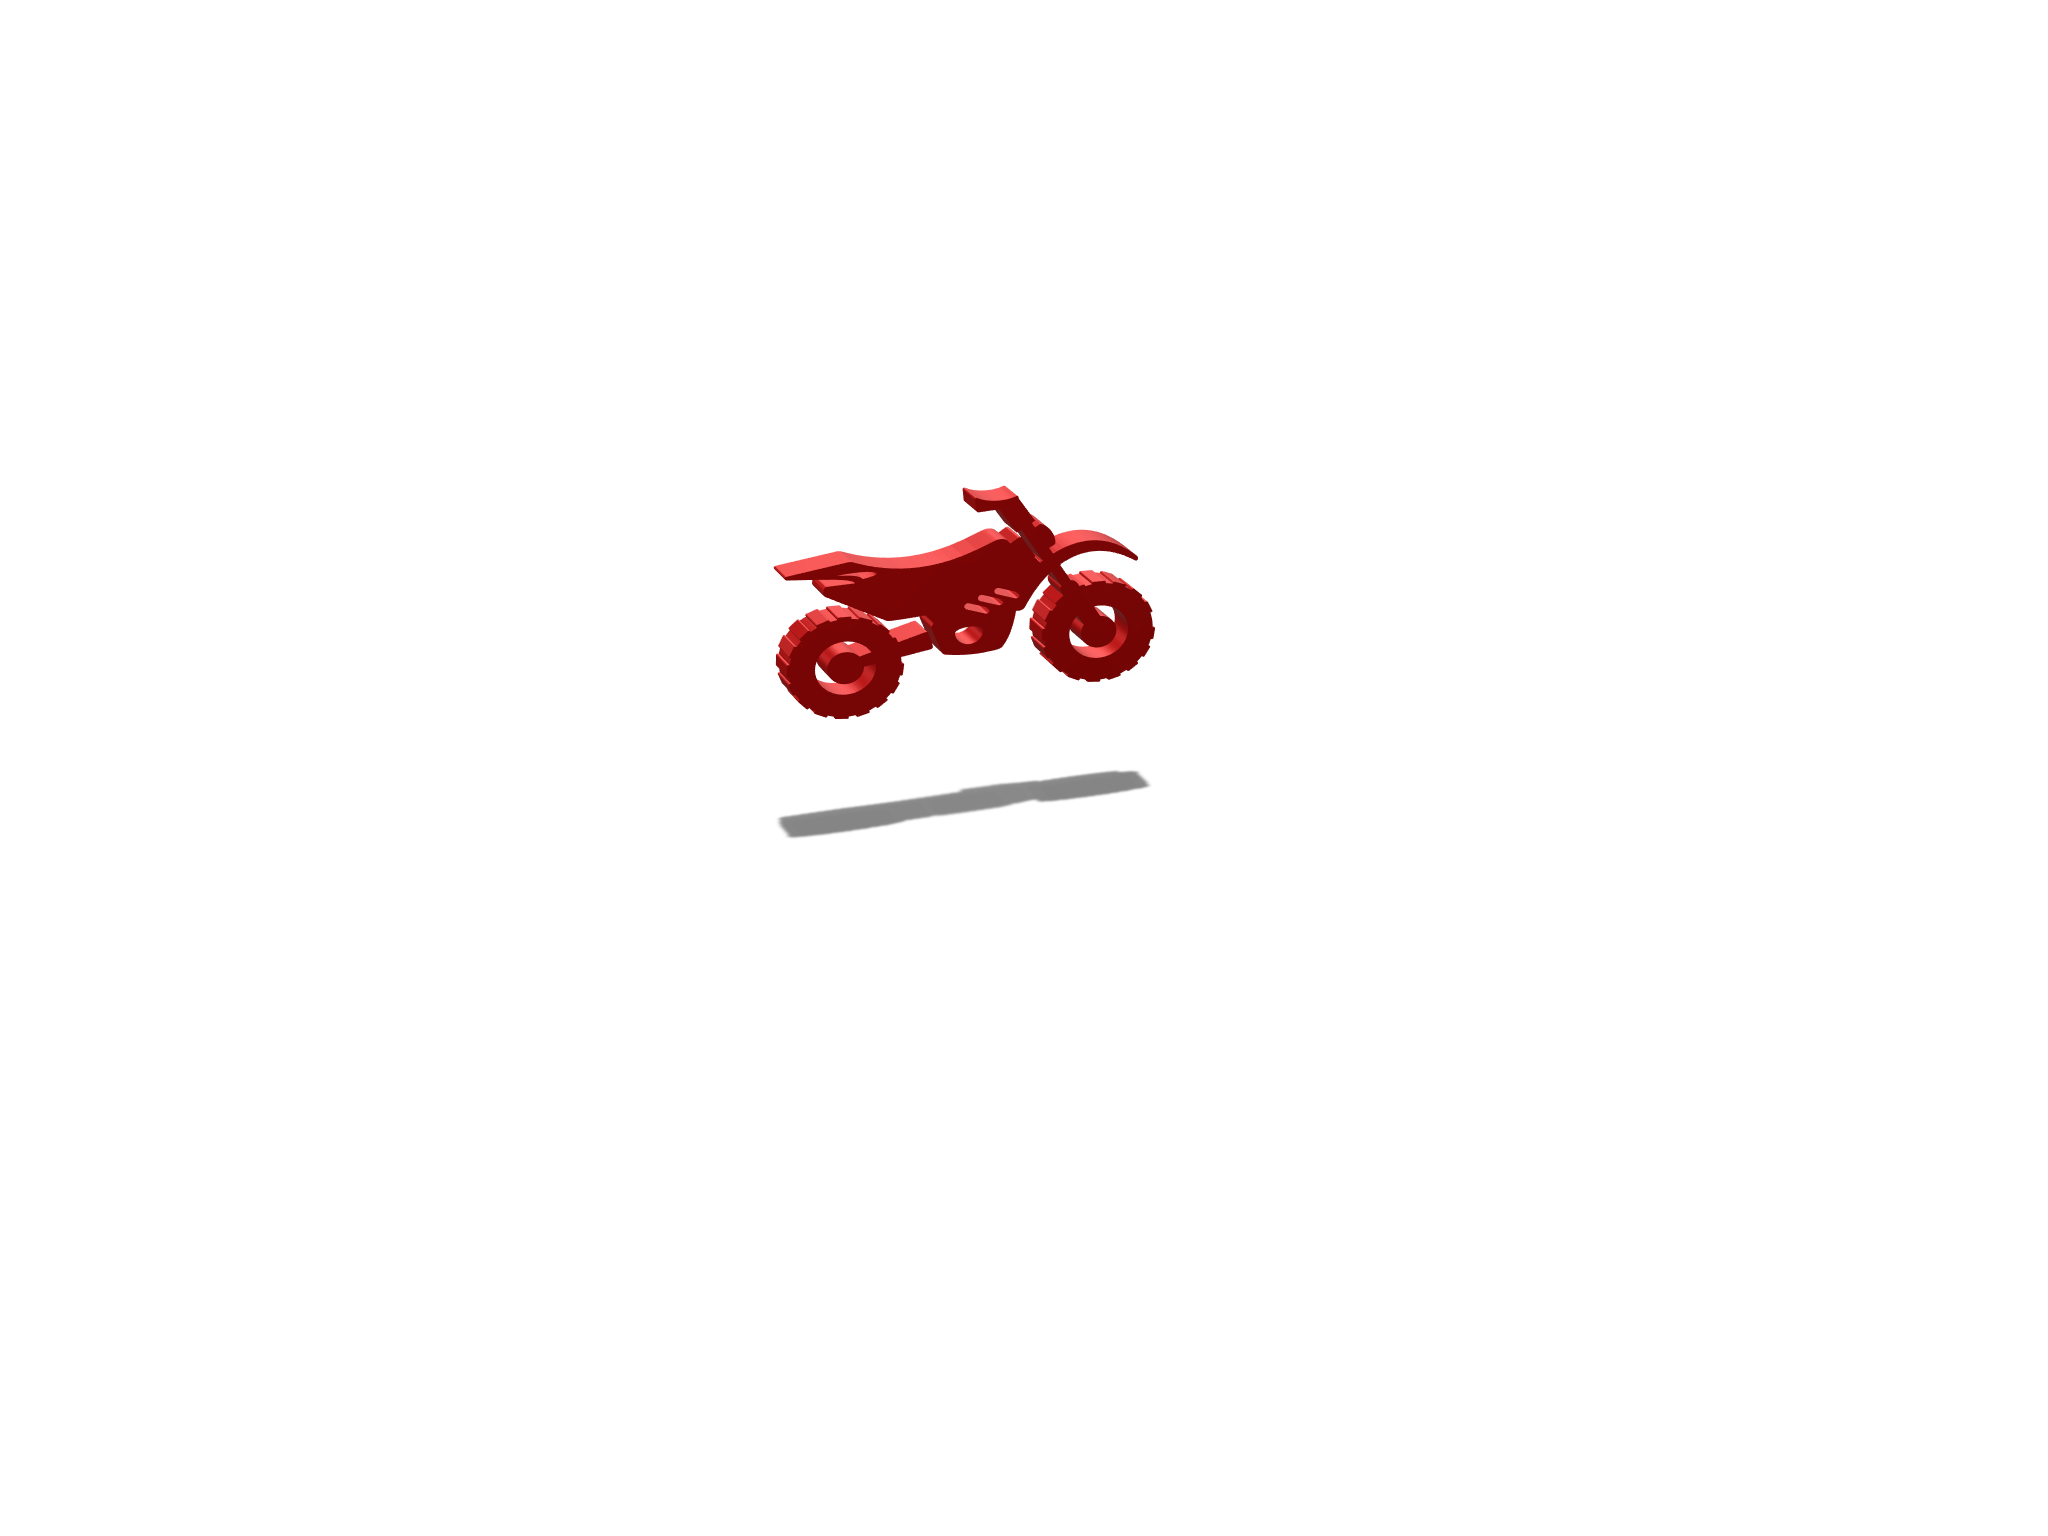 Motorcycle - 3D design by Manish Korvi Mar 12, 2018